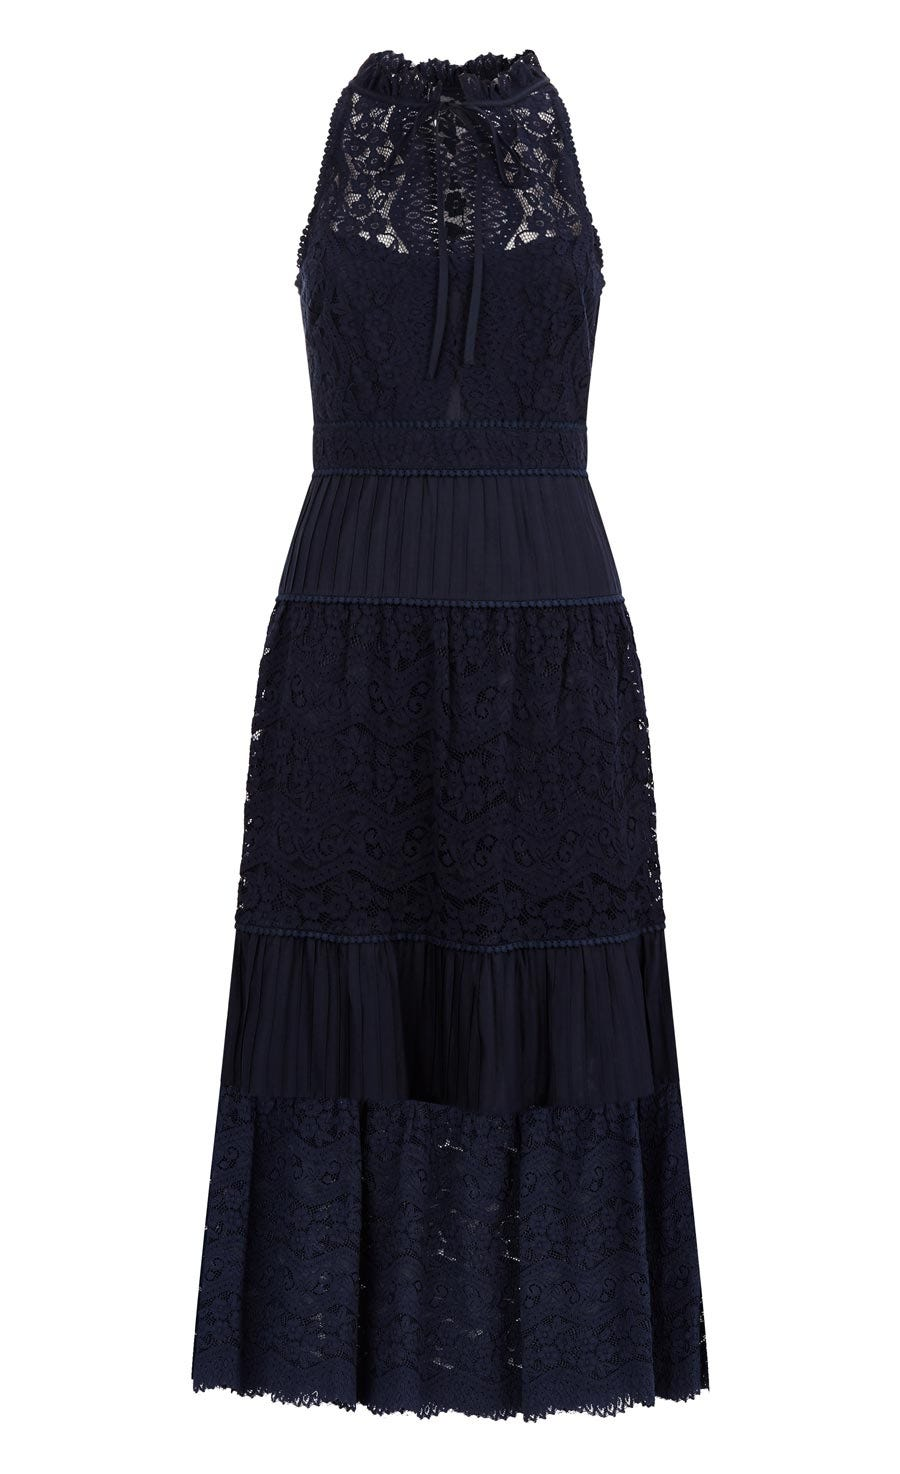 Lunar Lace Midi Dress, Midnight